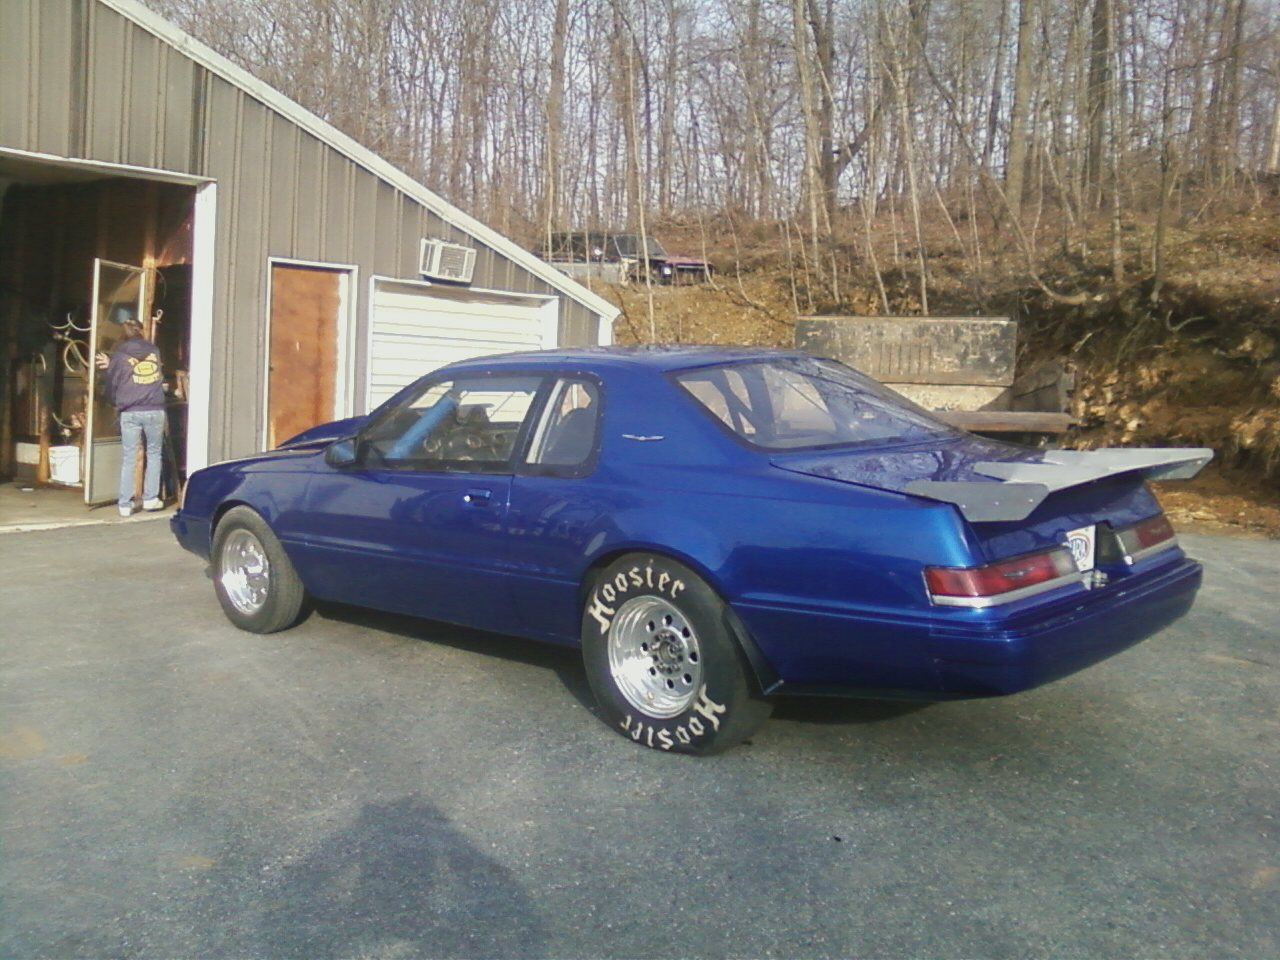 blue 1985 Ford Thunderbird turbo coupe